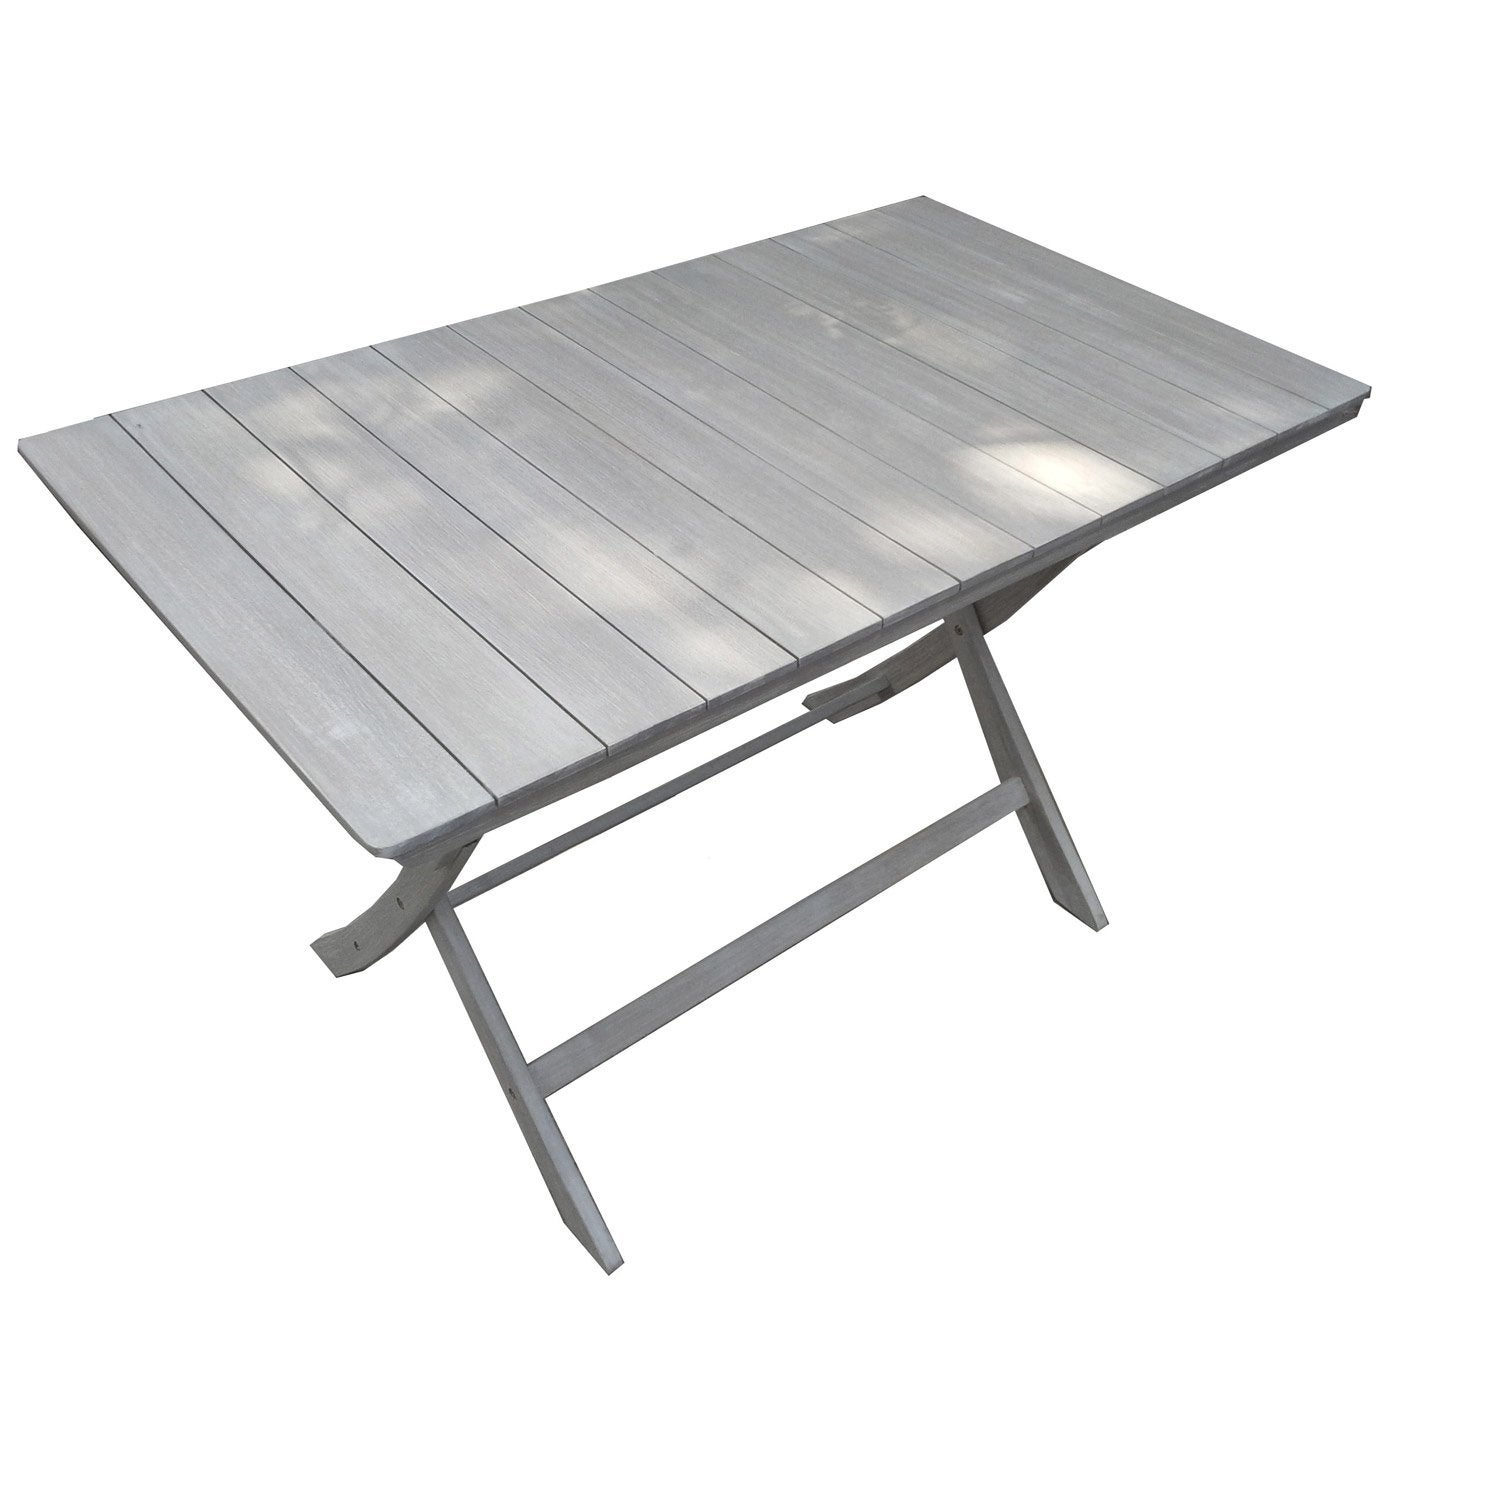 Table de jardin naterial portofino rectangulaire gris 4 for Table exterieur tridome